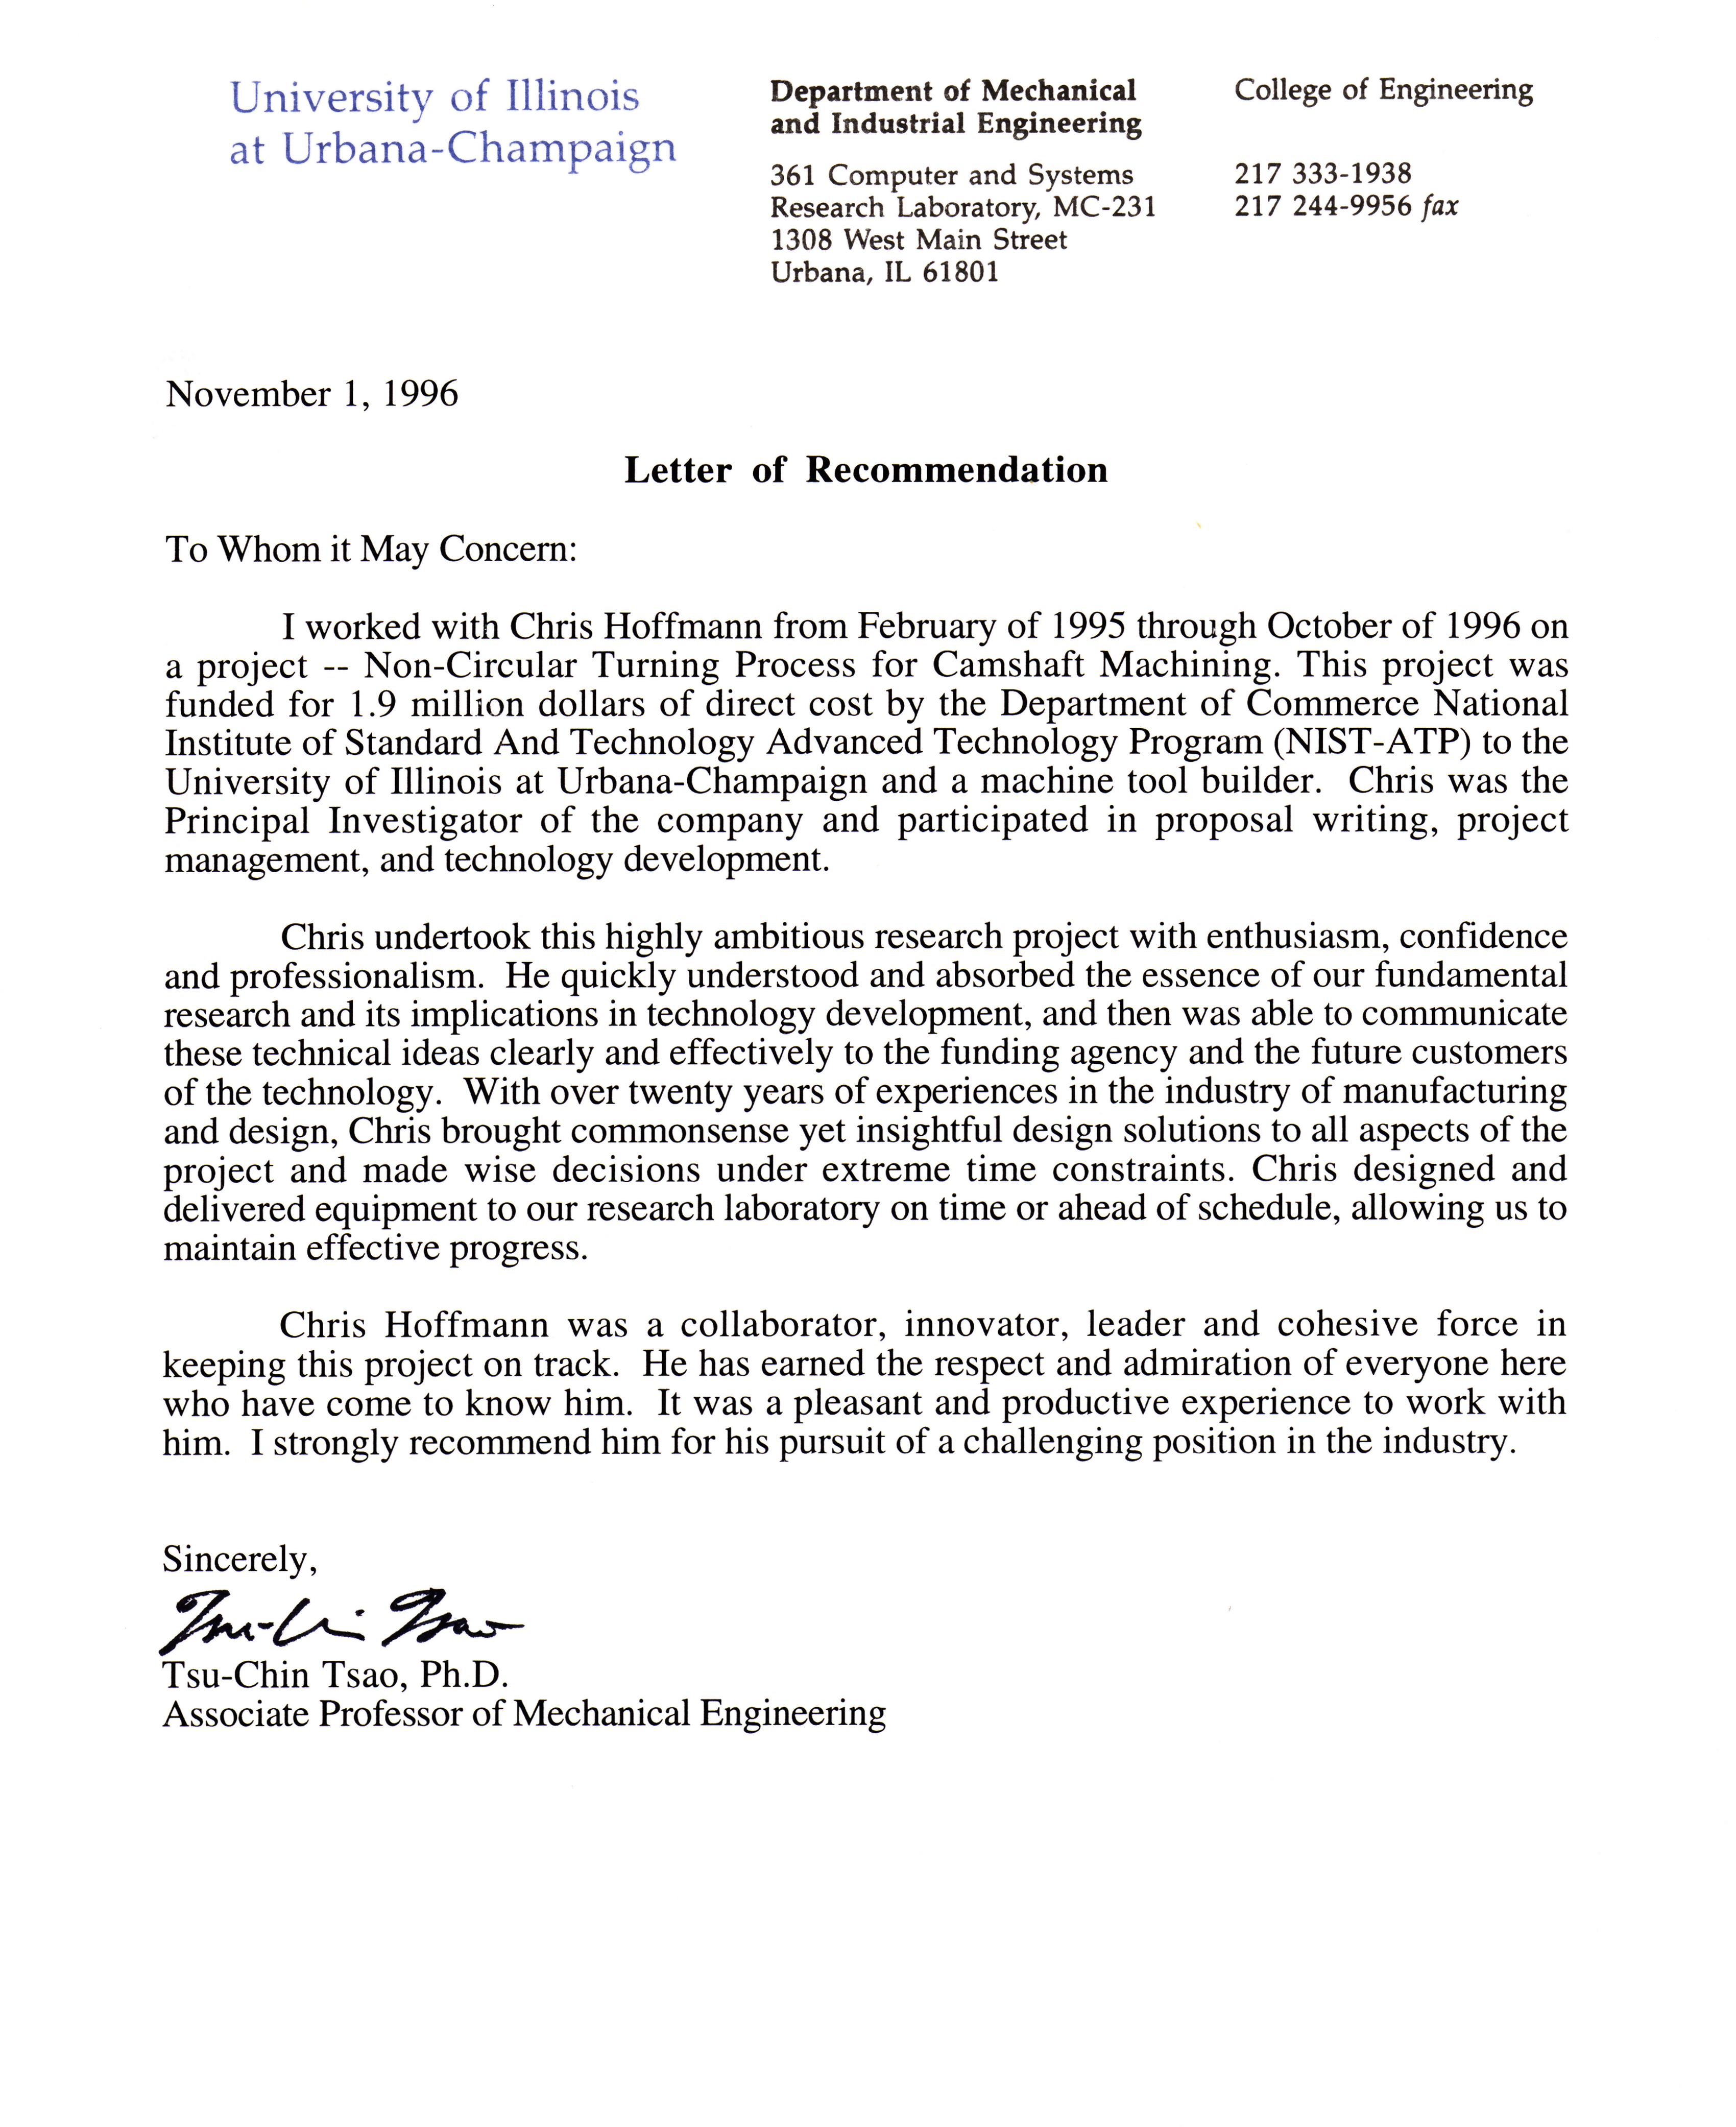 Recommendation letter for mechanical engineering student